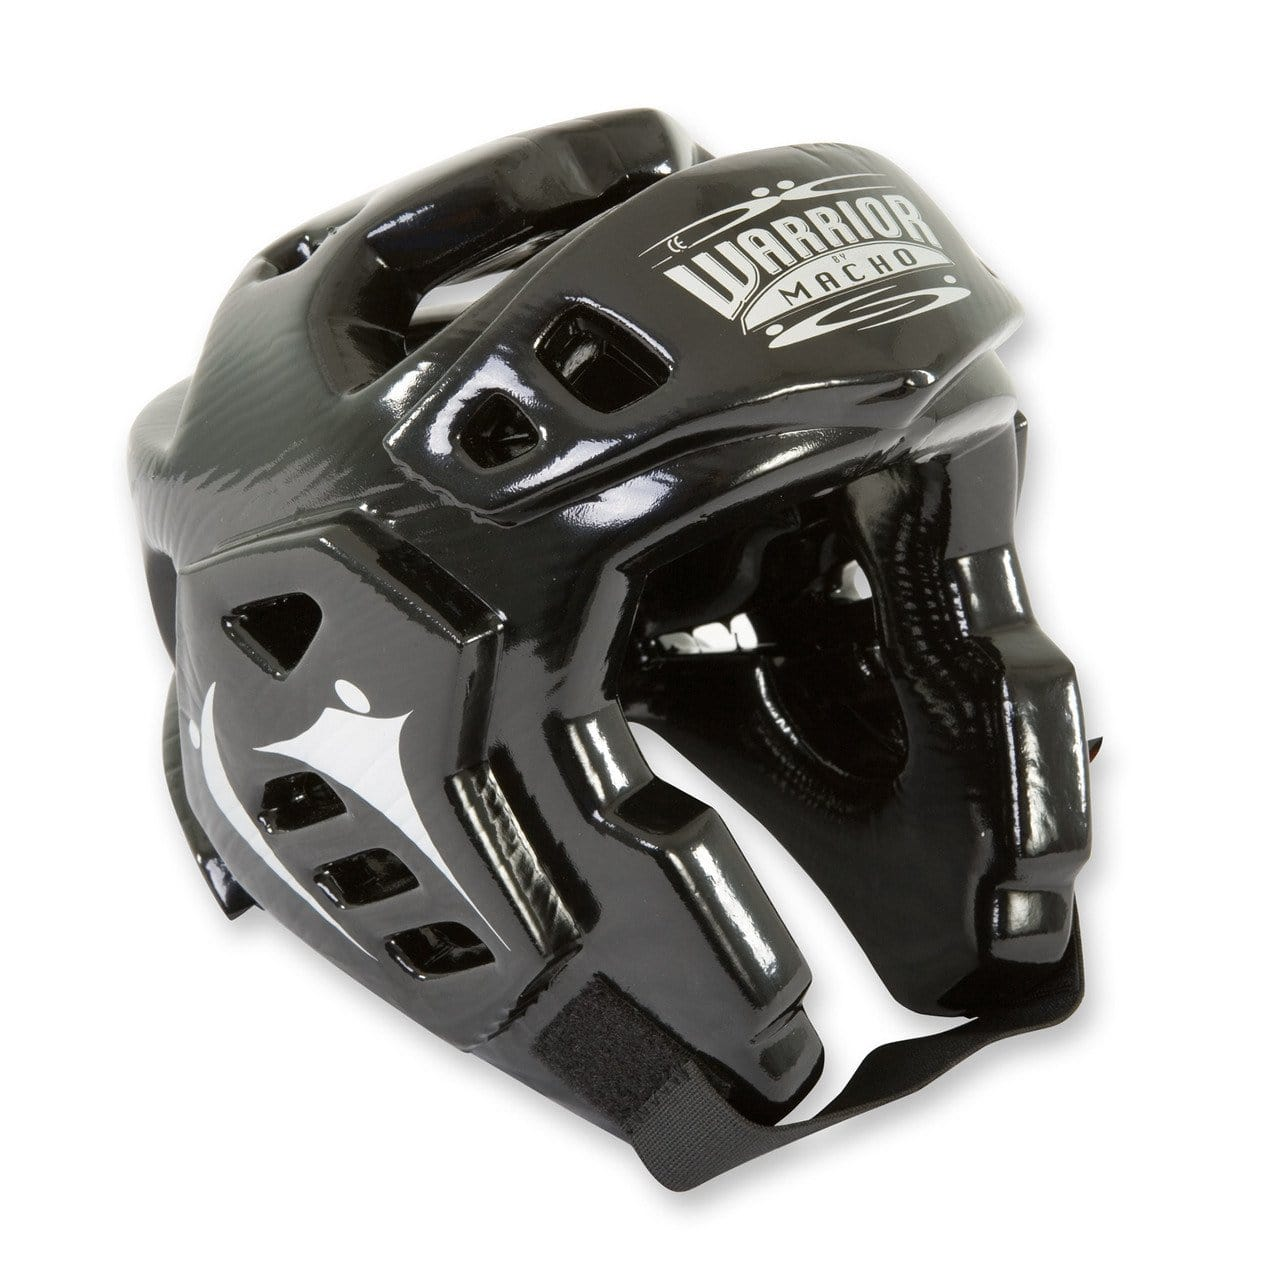 black Mach Warrior Karate Sparring Head Gear